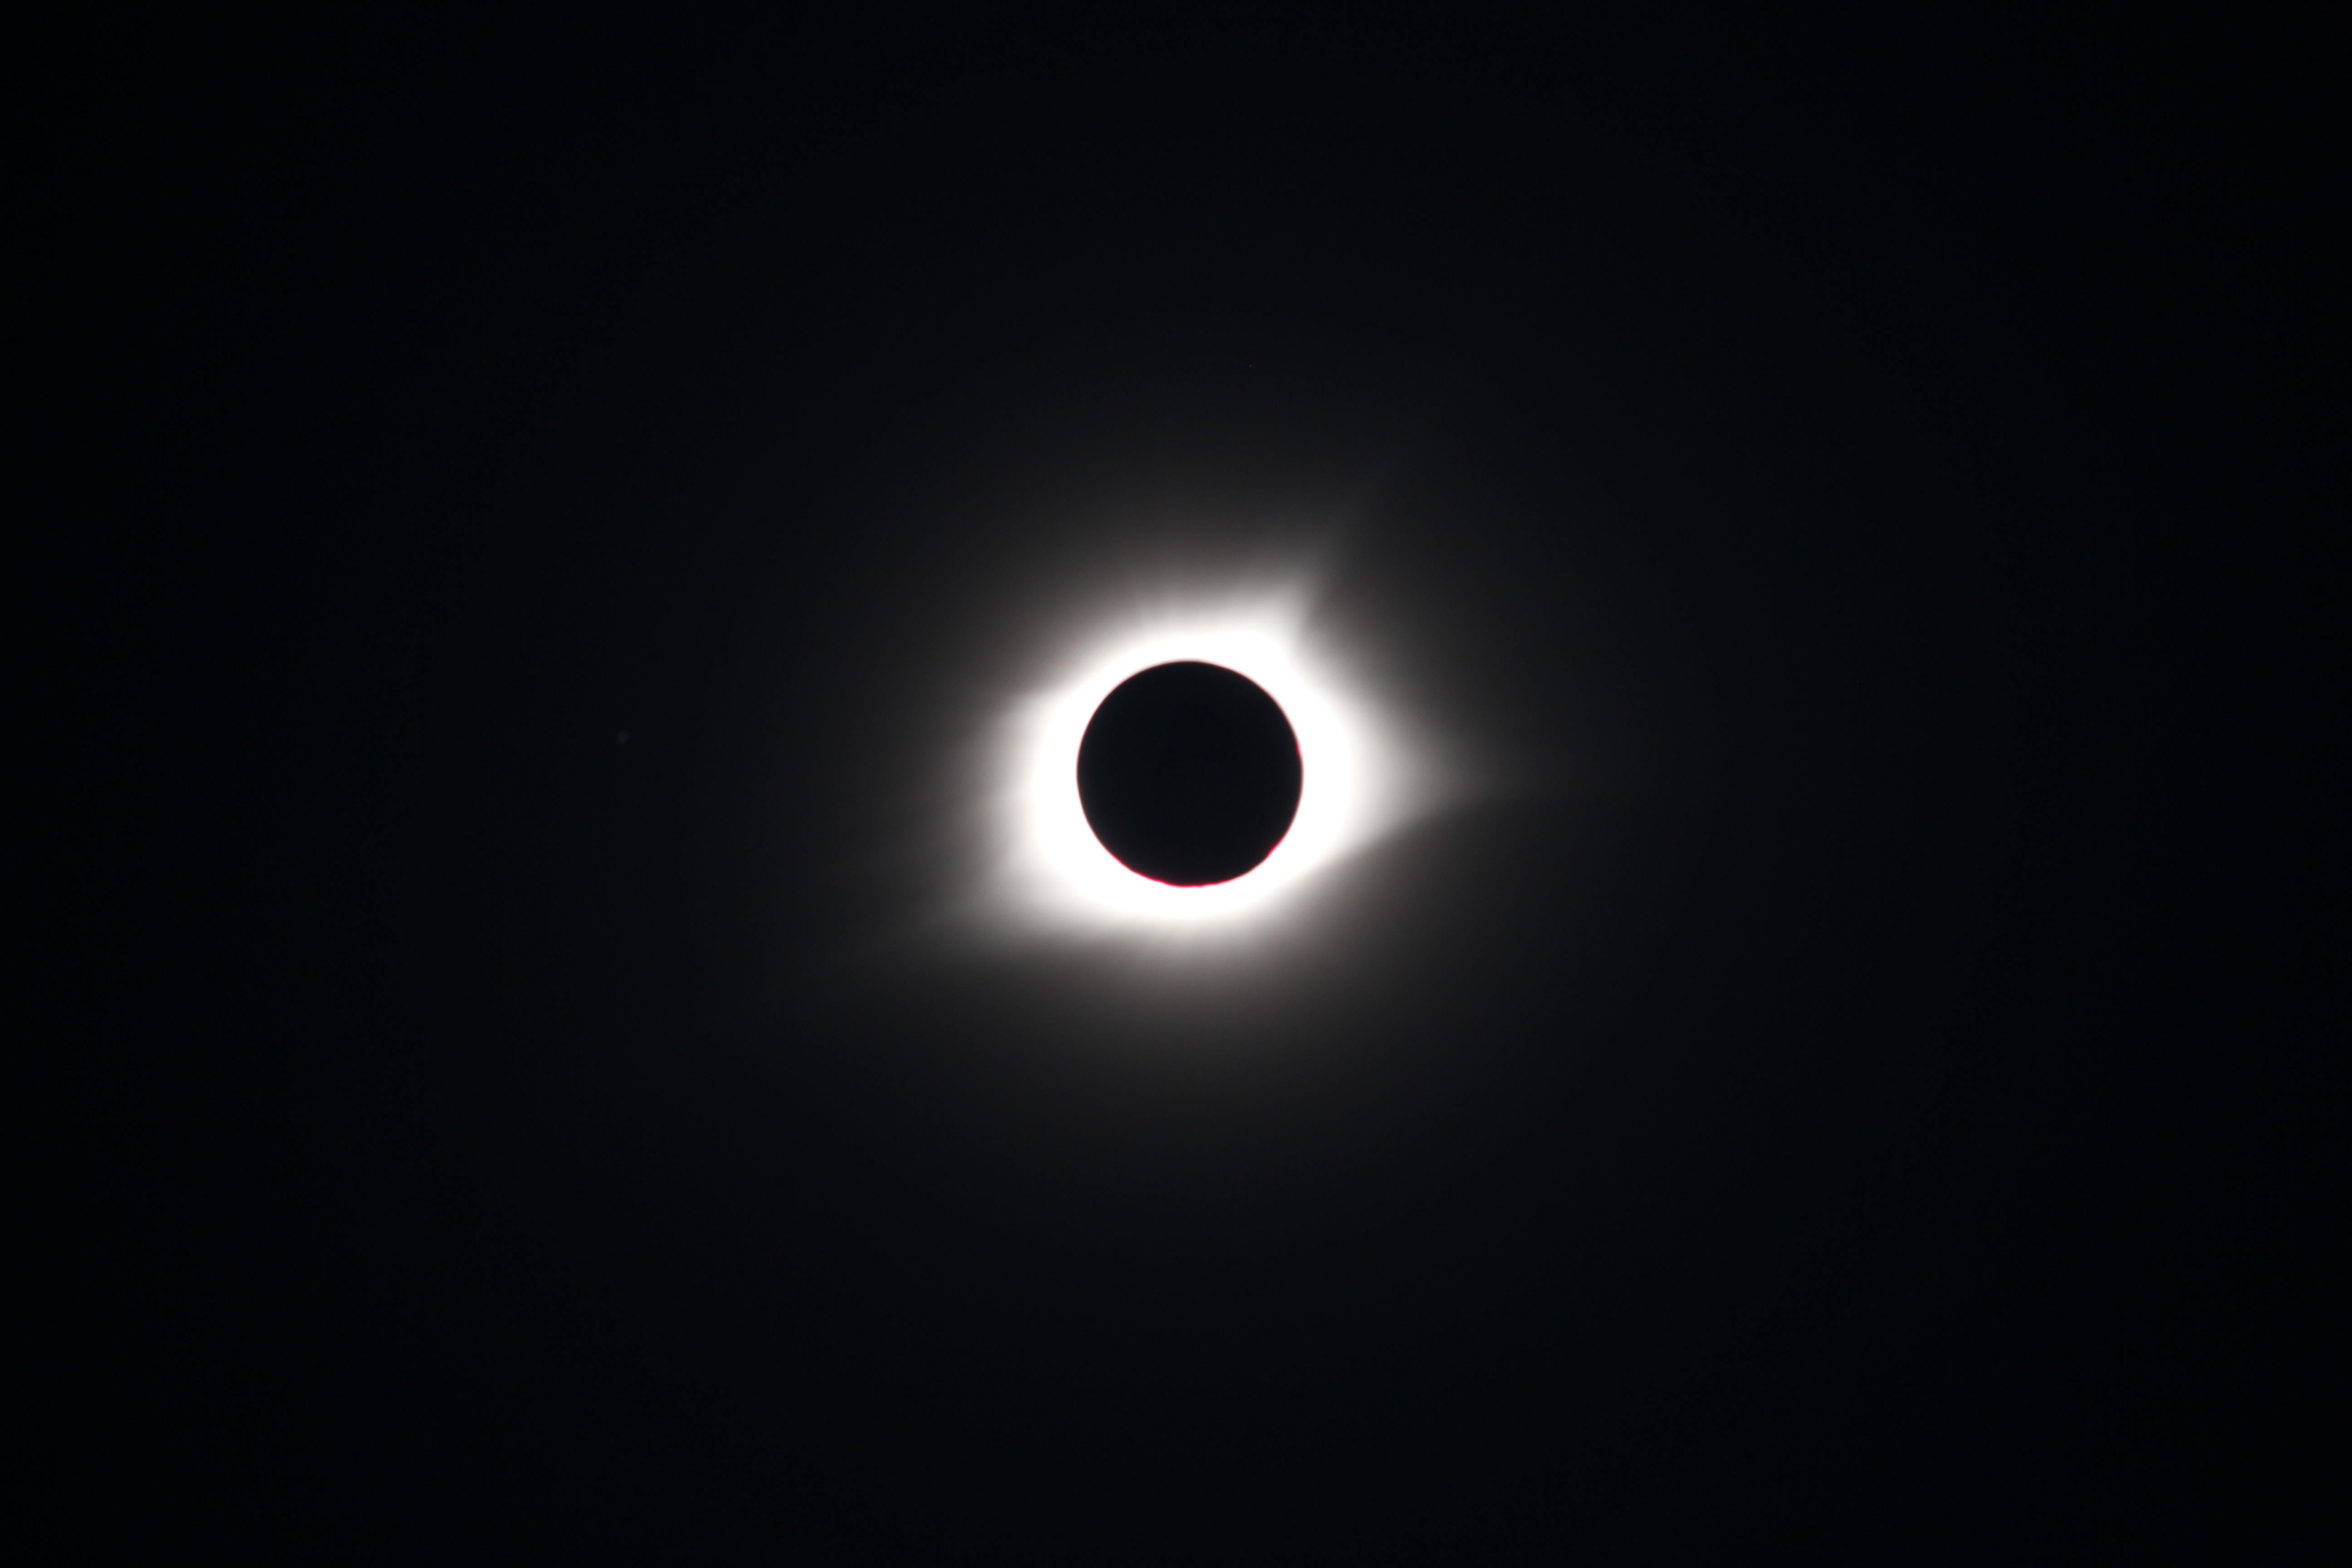 5373728 5184x3456 totality sun black background darkness 5184x3456